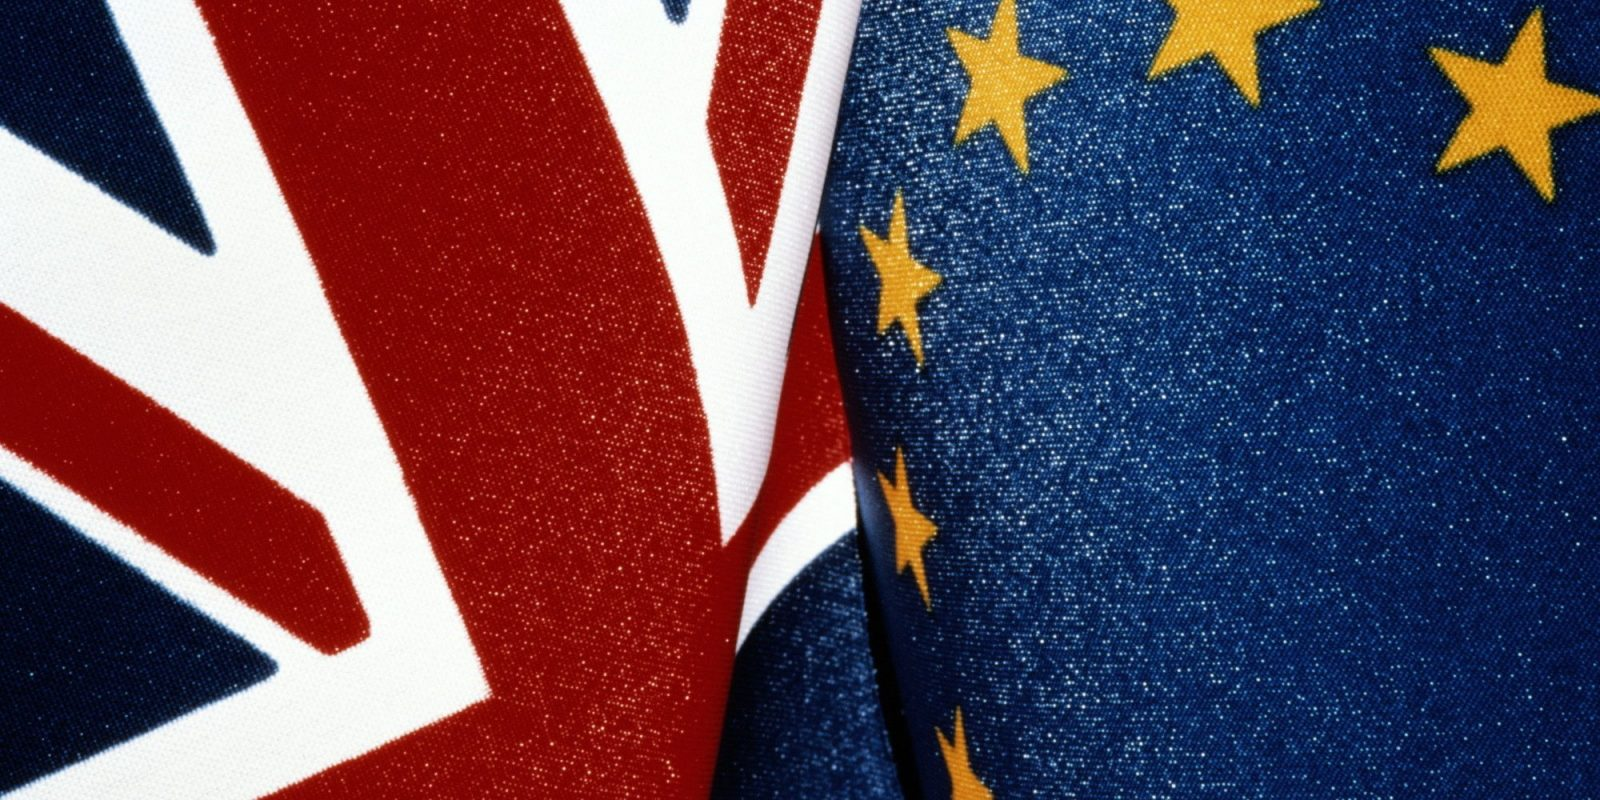 Close-up detail of Union Flag and EU flag against each other